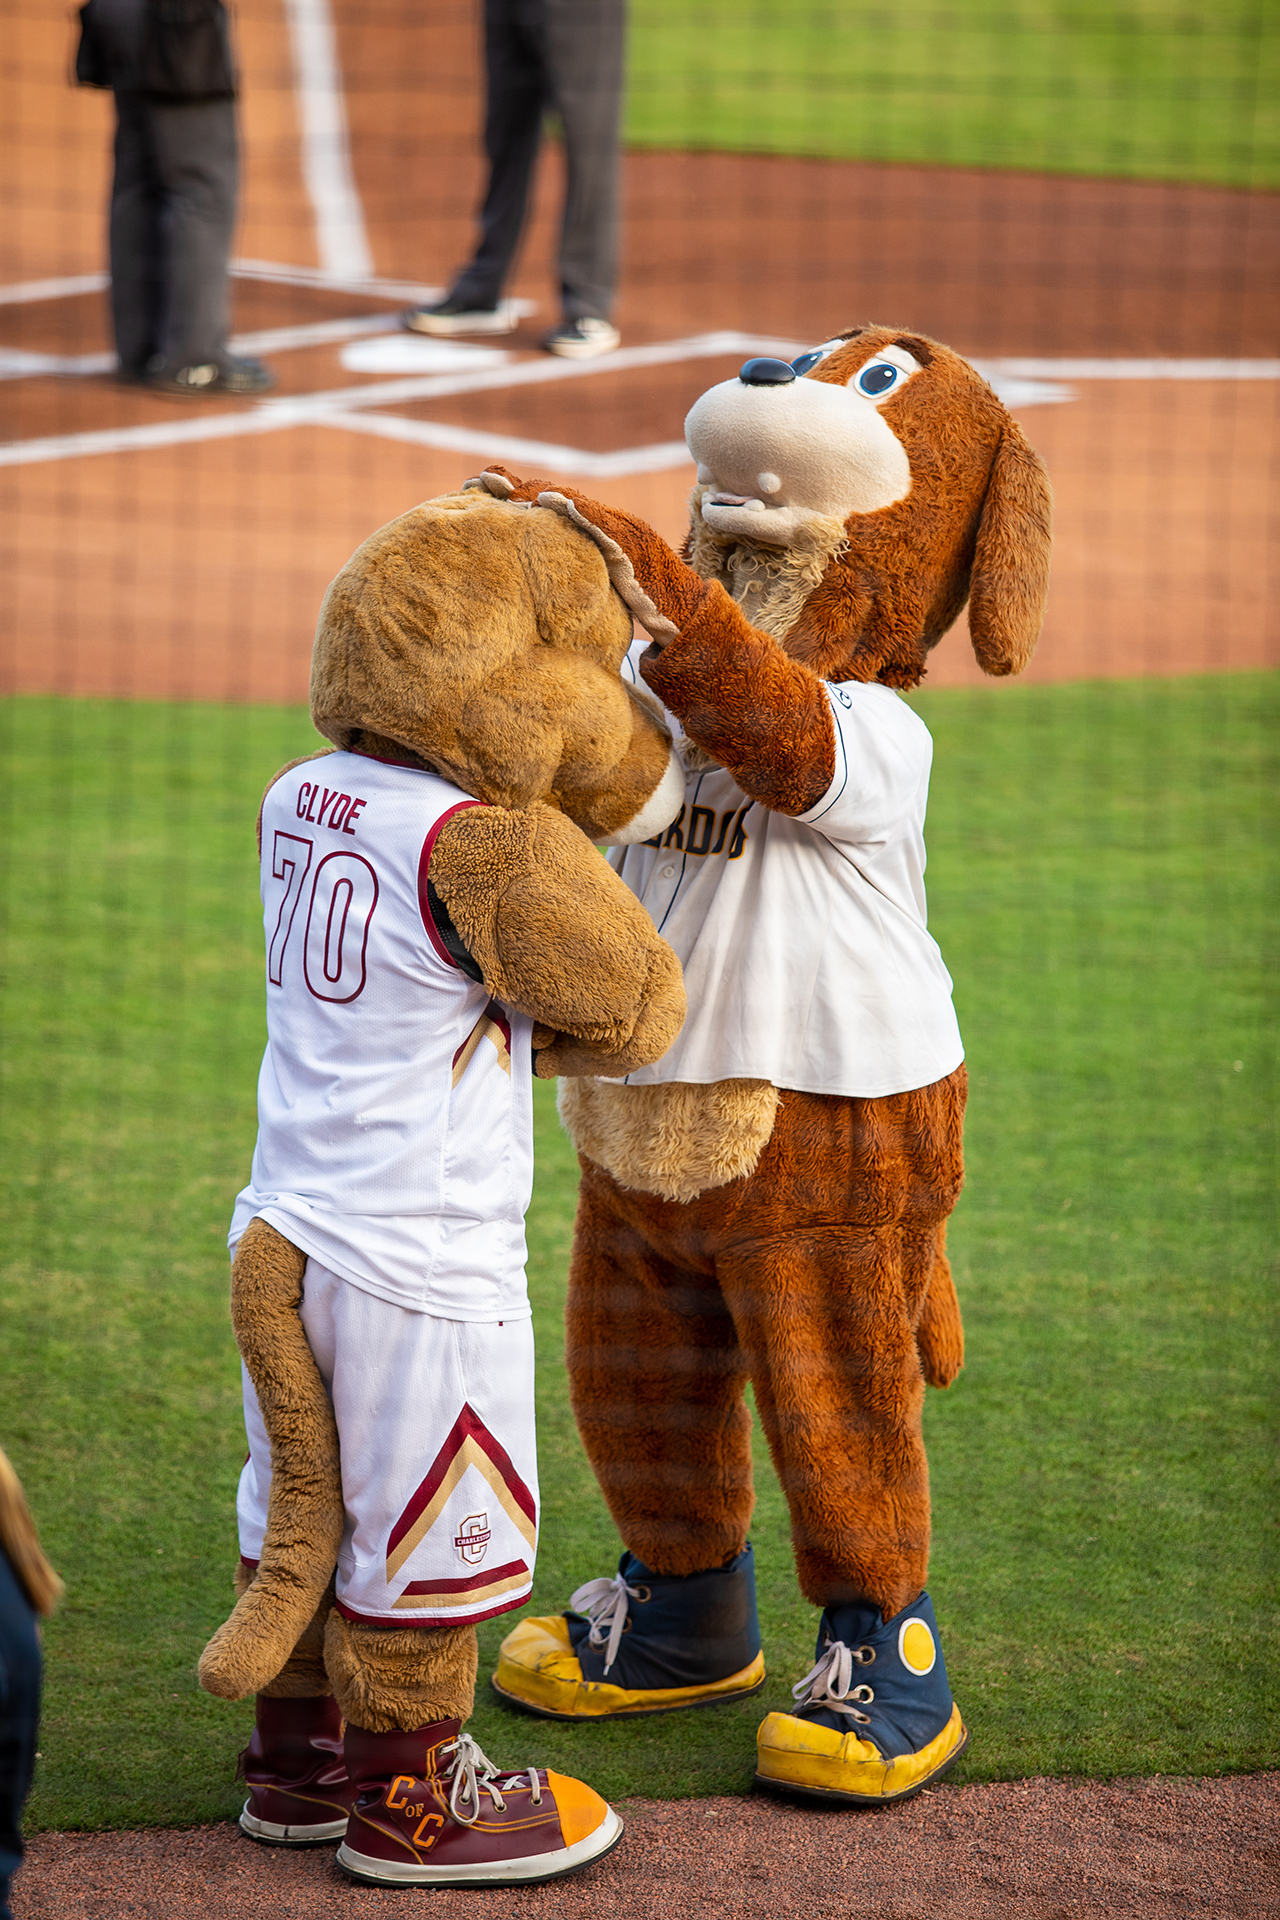 Charlie the RiverDog pets Clyde the Cougar at a RiverDogs game